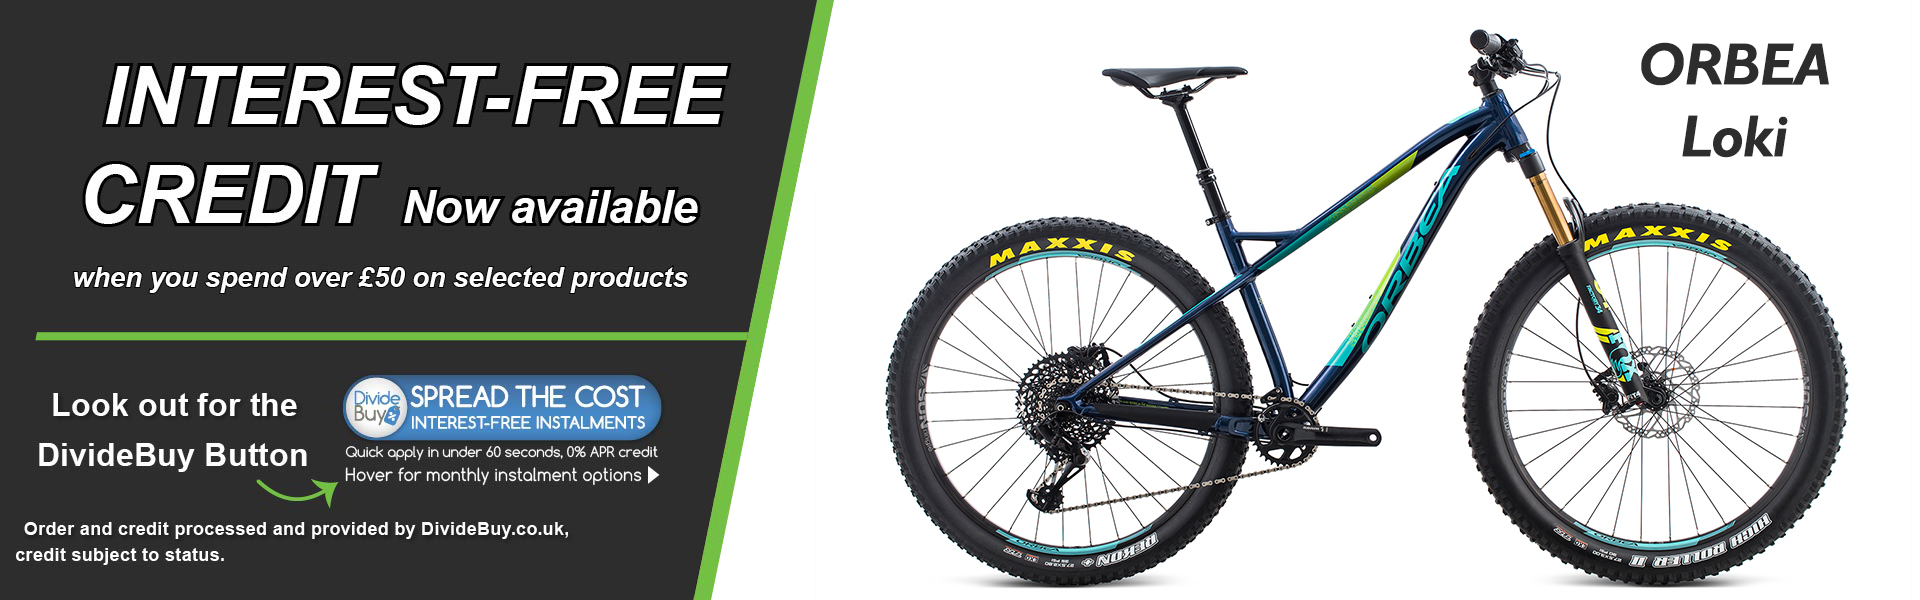 Interest Free Orbea Loki